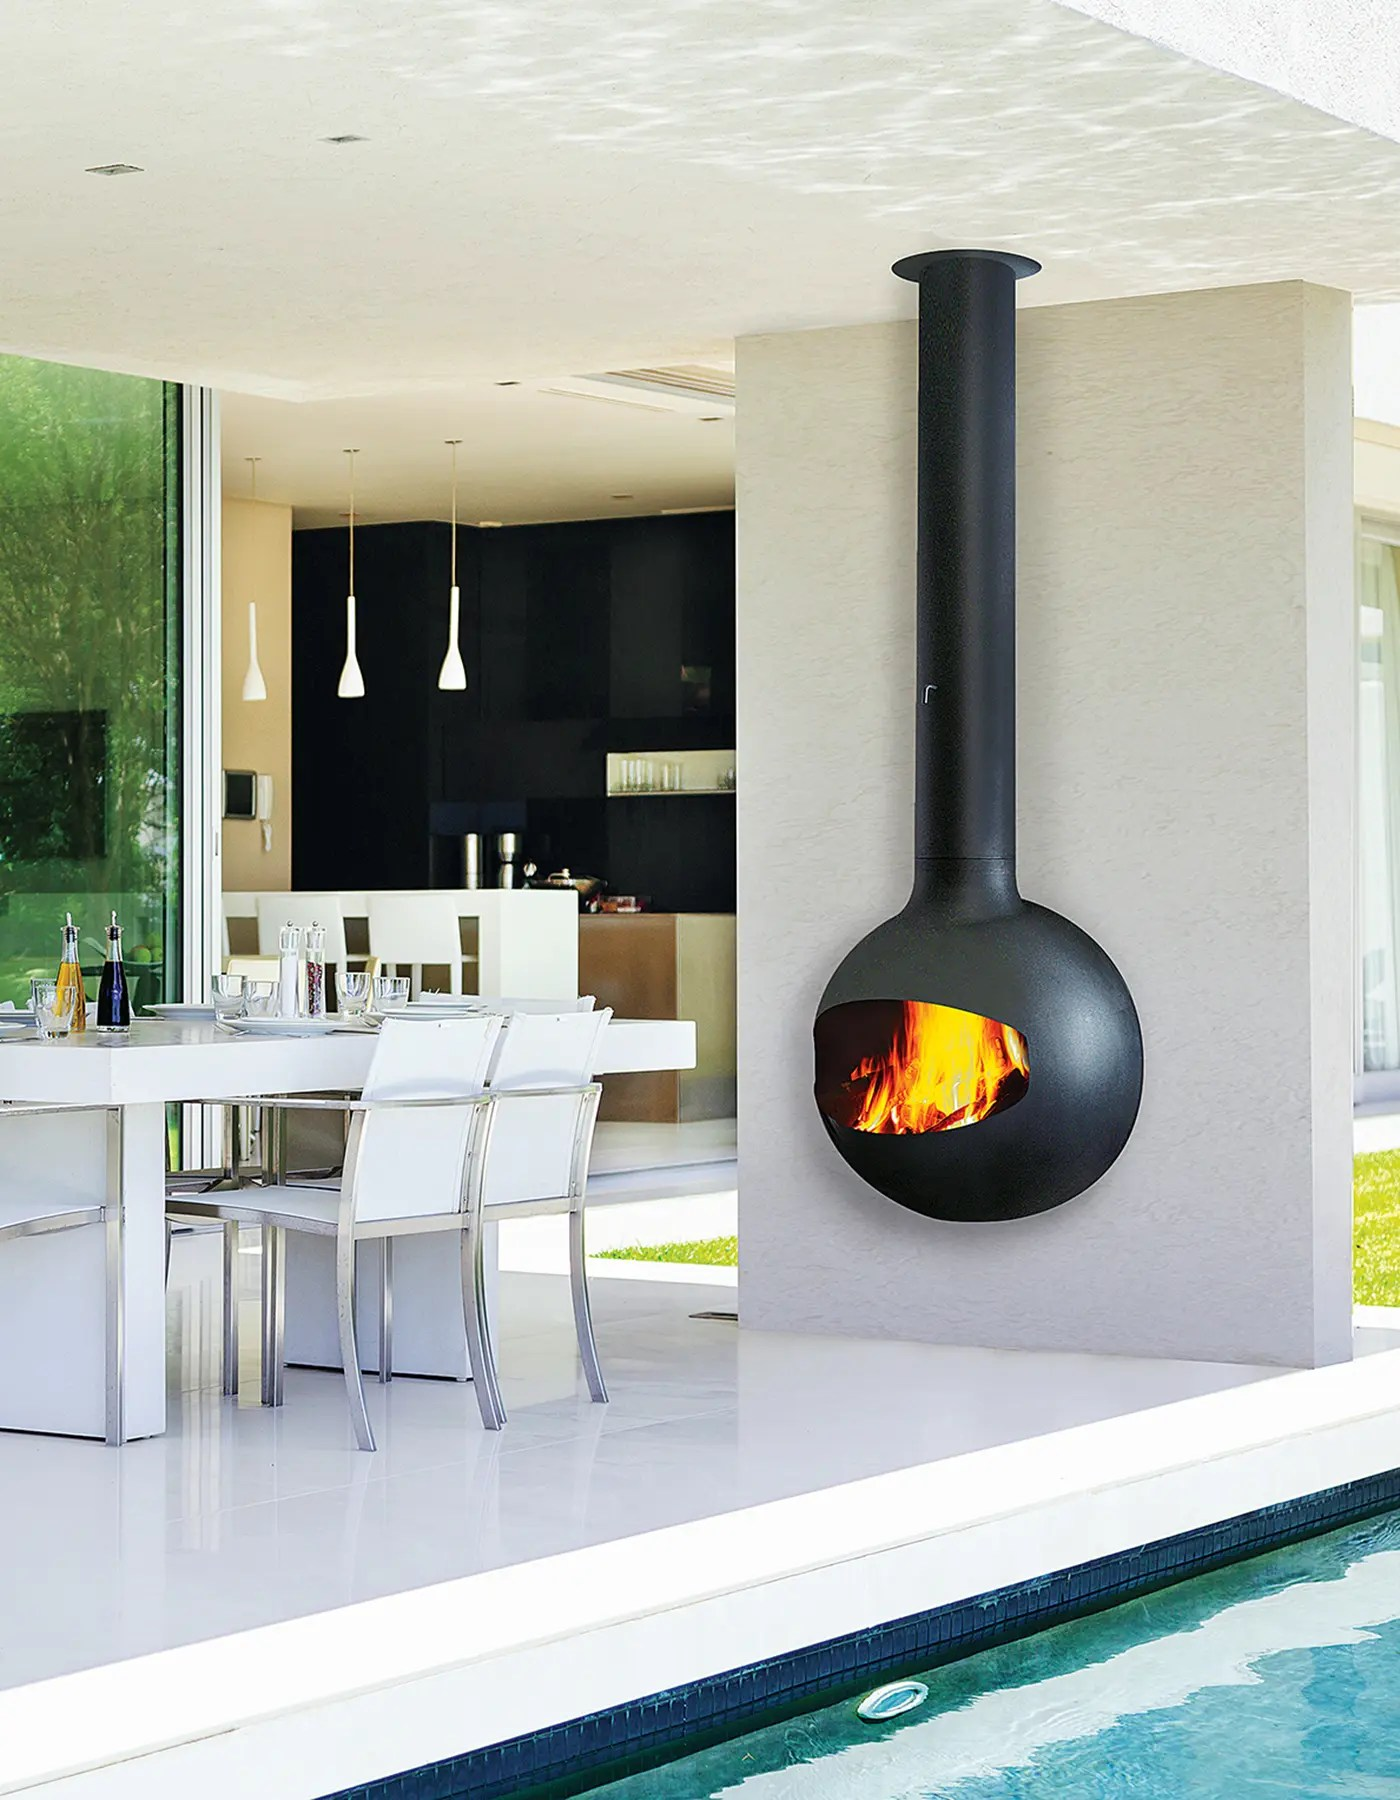 Cheminee Outdoor Emifocus Outdoor By Focus Fires Open Faced Outdoor Fireplace